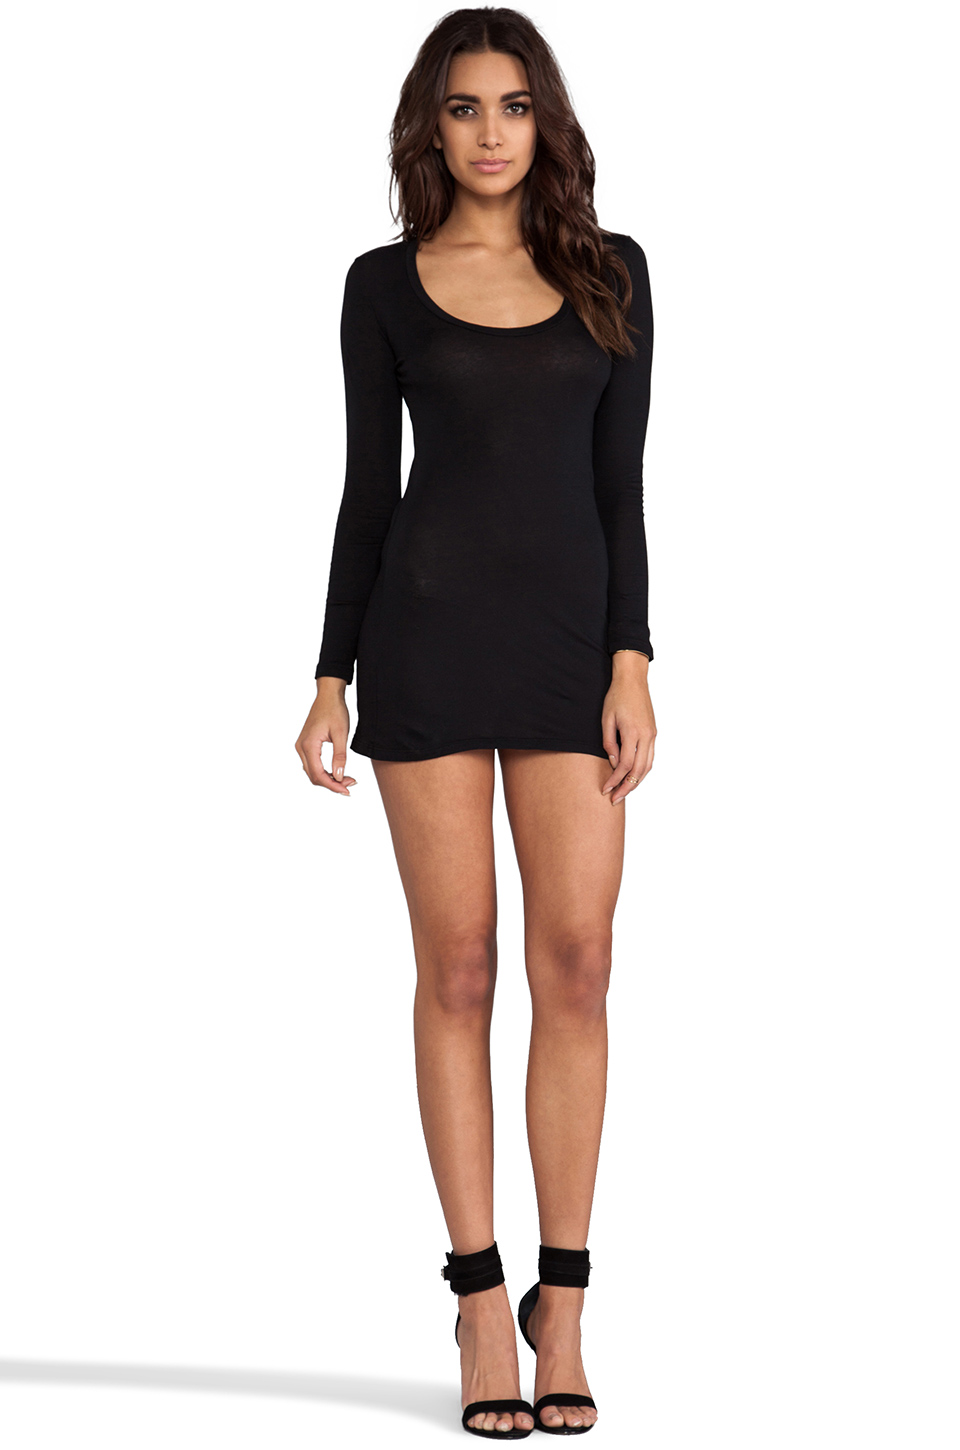 Bobi Light Weight Jersey Long Sleeve Dress in Black